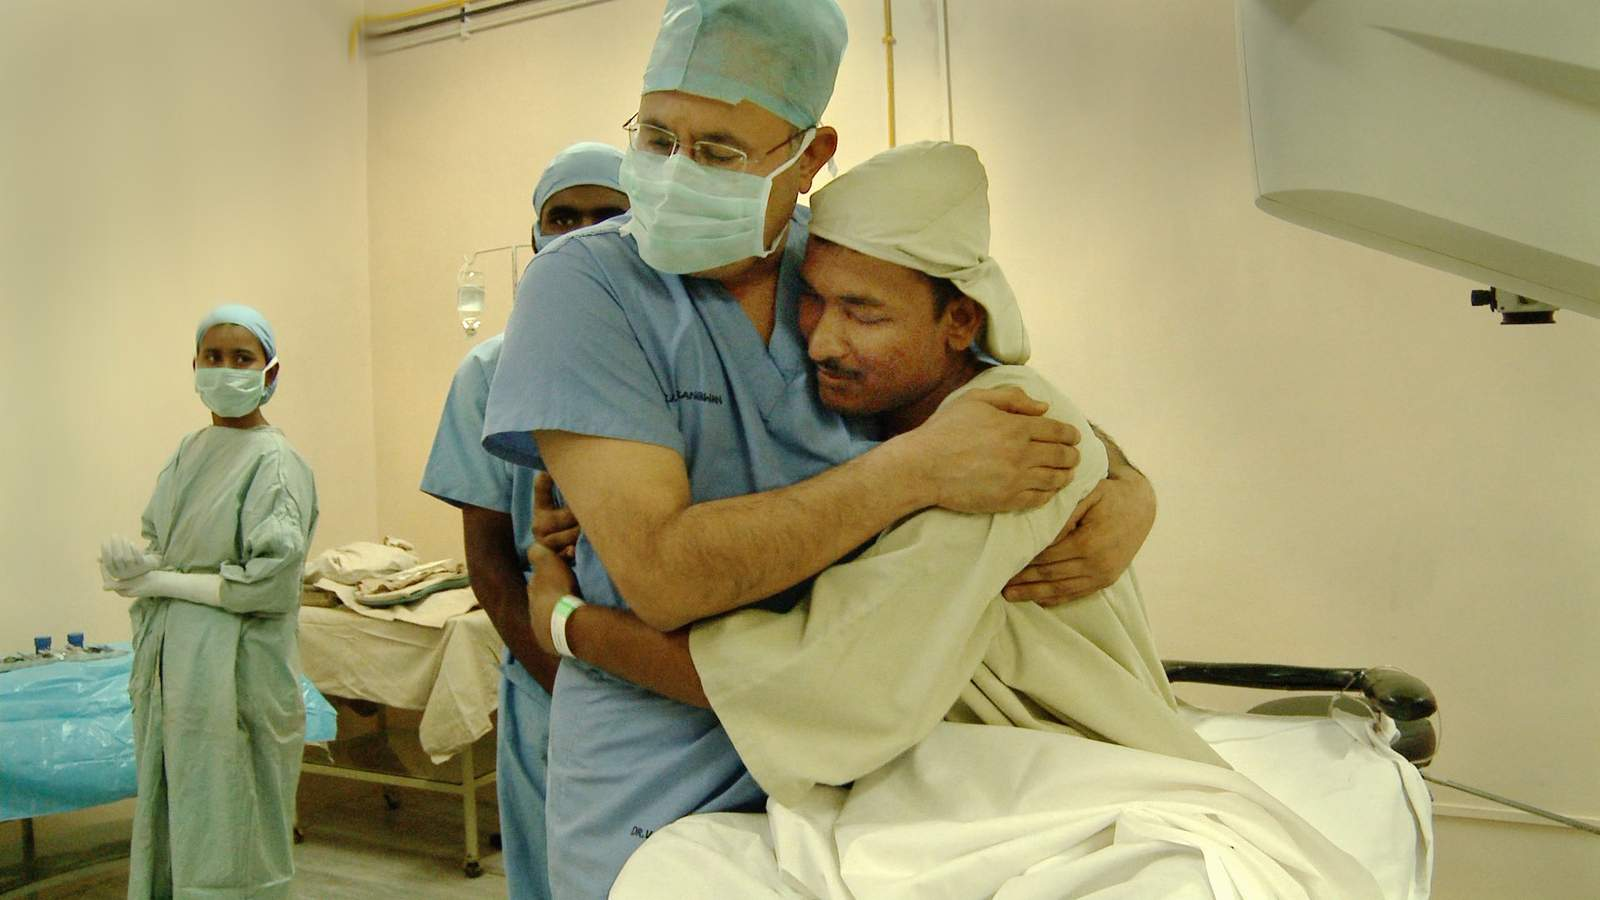 Hug_doctor_and_patient.jpg